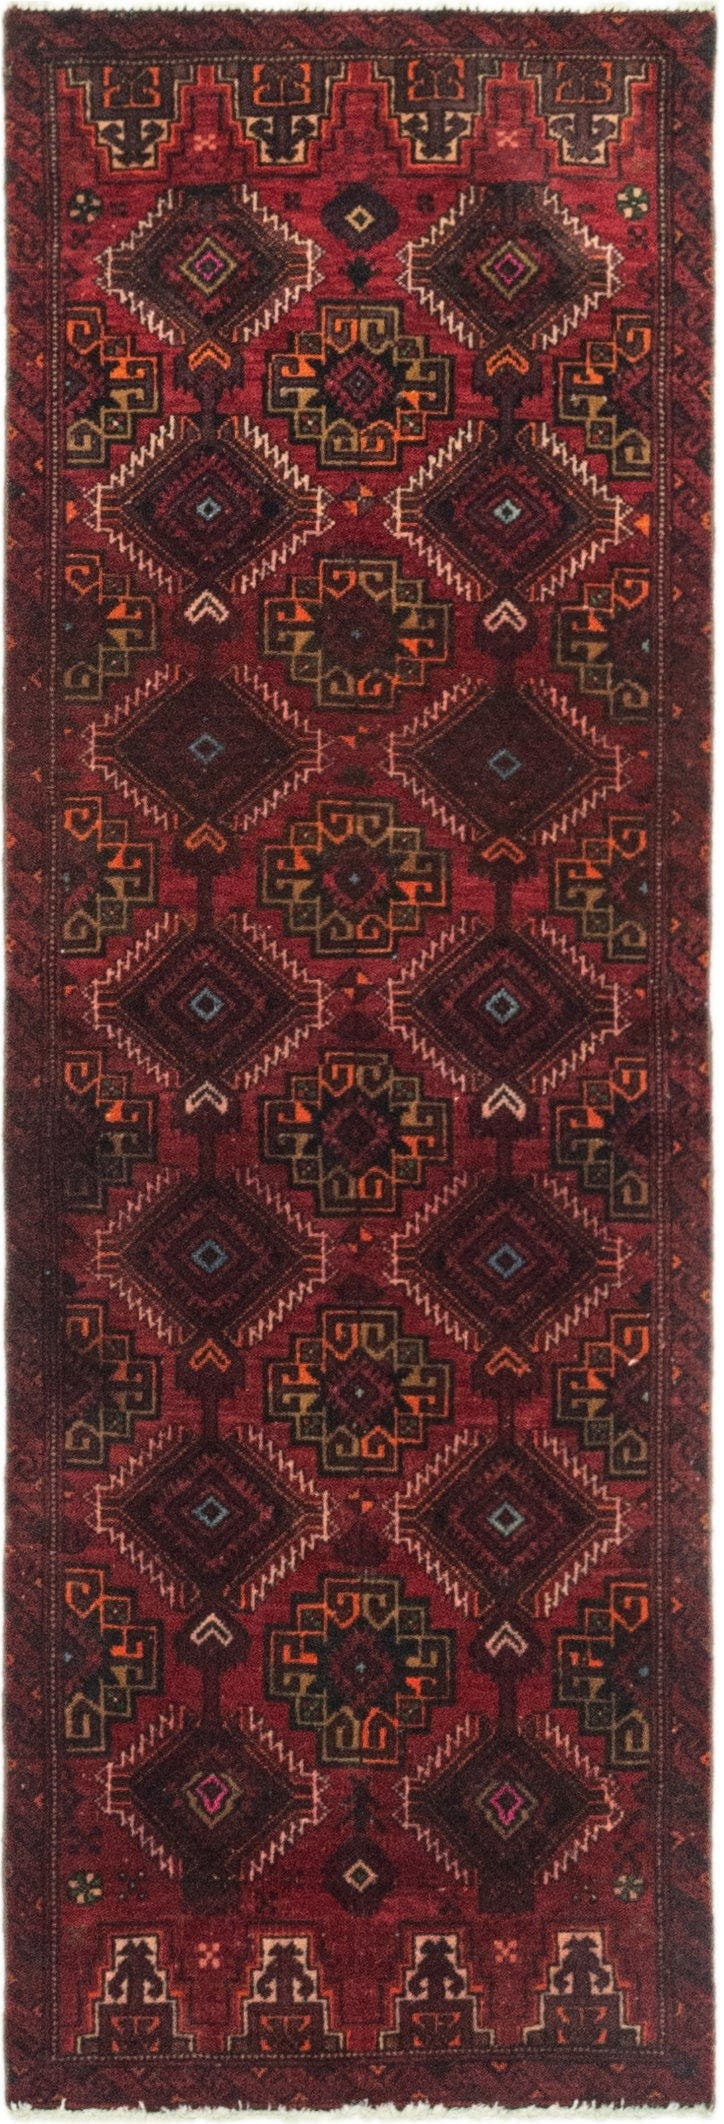 2' x 5' 9 Ultra Vintage Persian Runner Rug main image